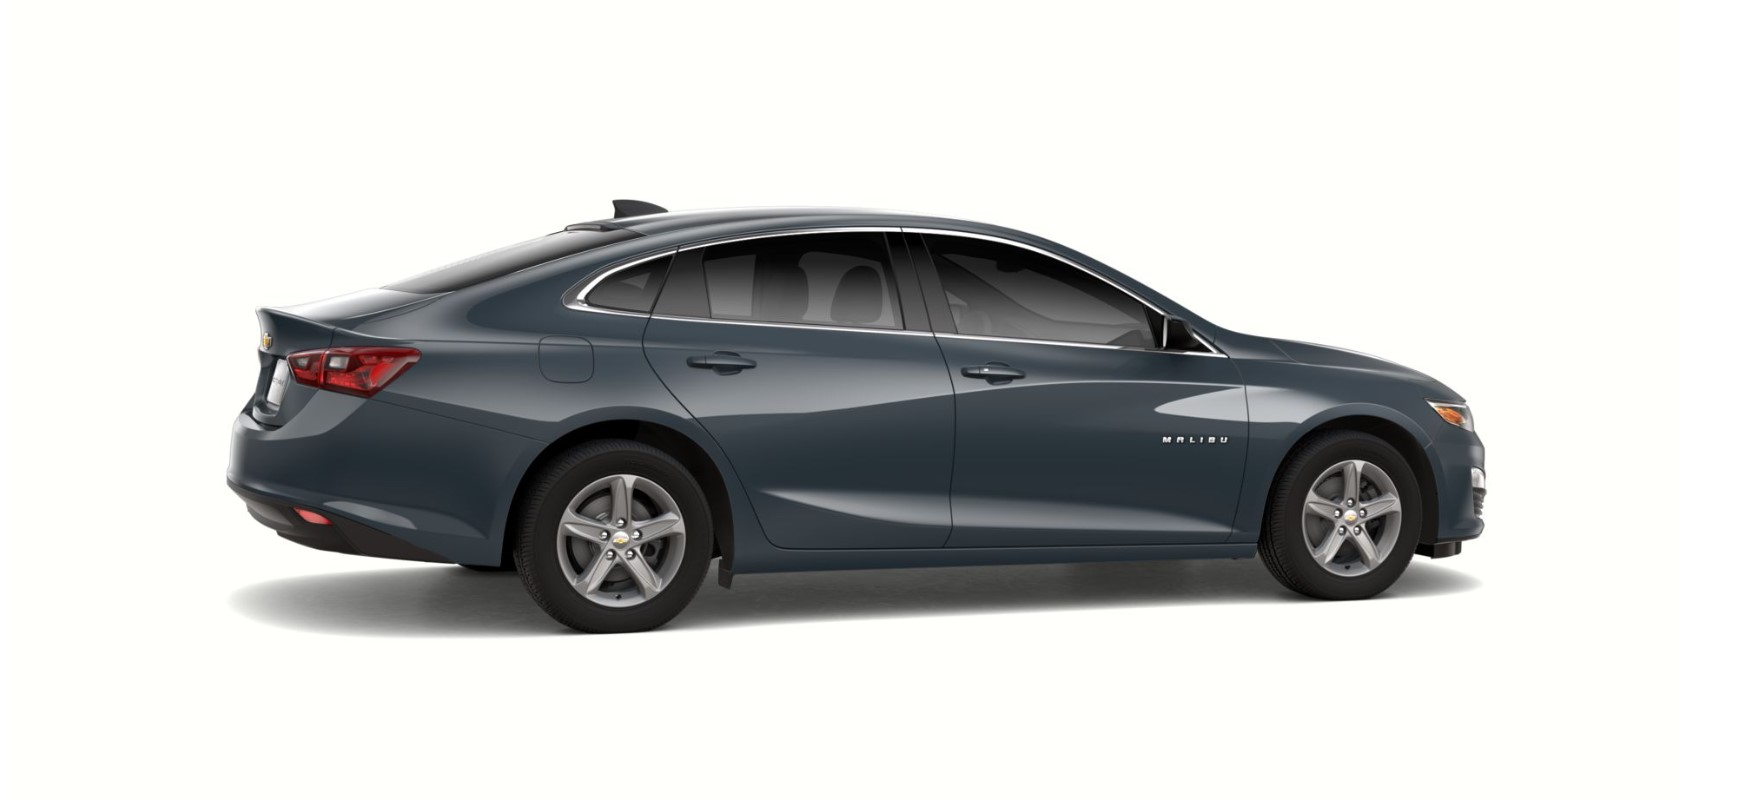 2019 Chevrolet Malibu LS Shadow Gray Exterior Side Picture